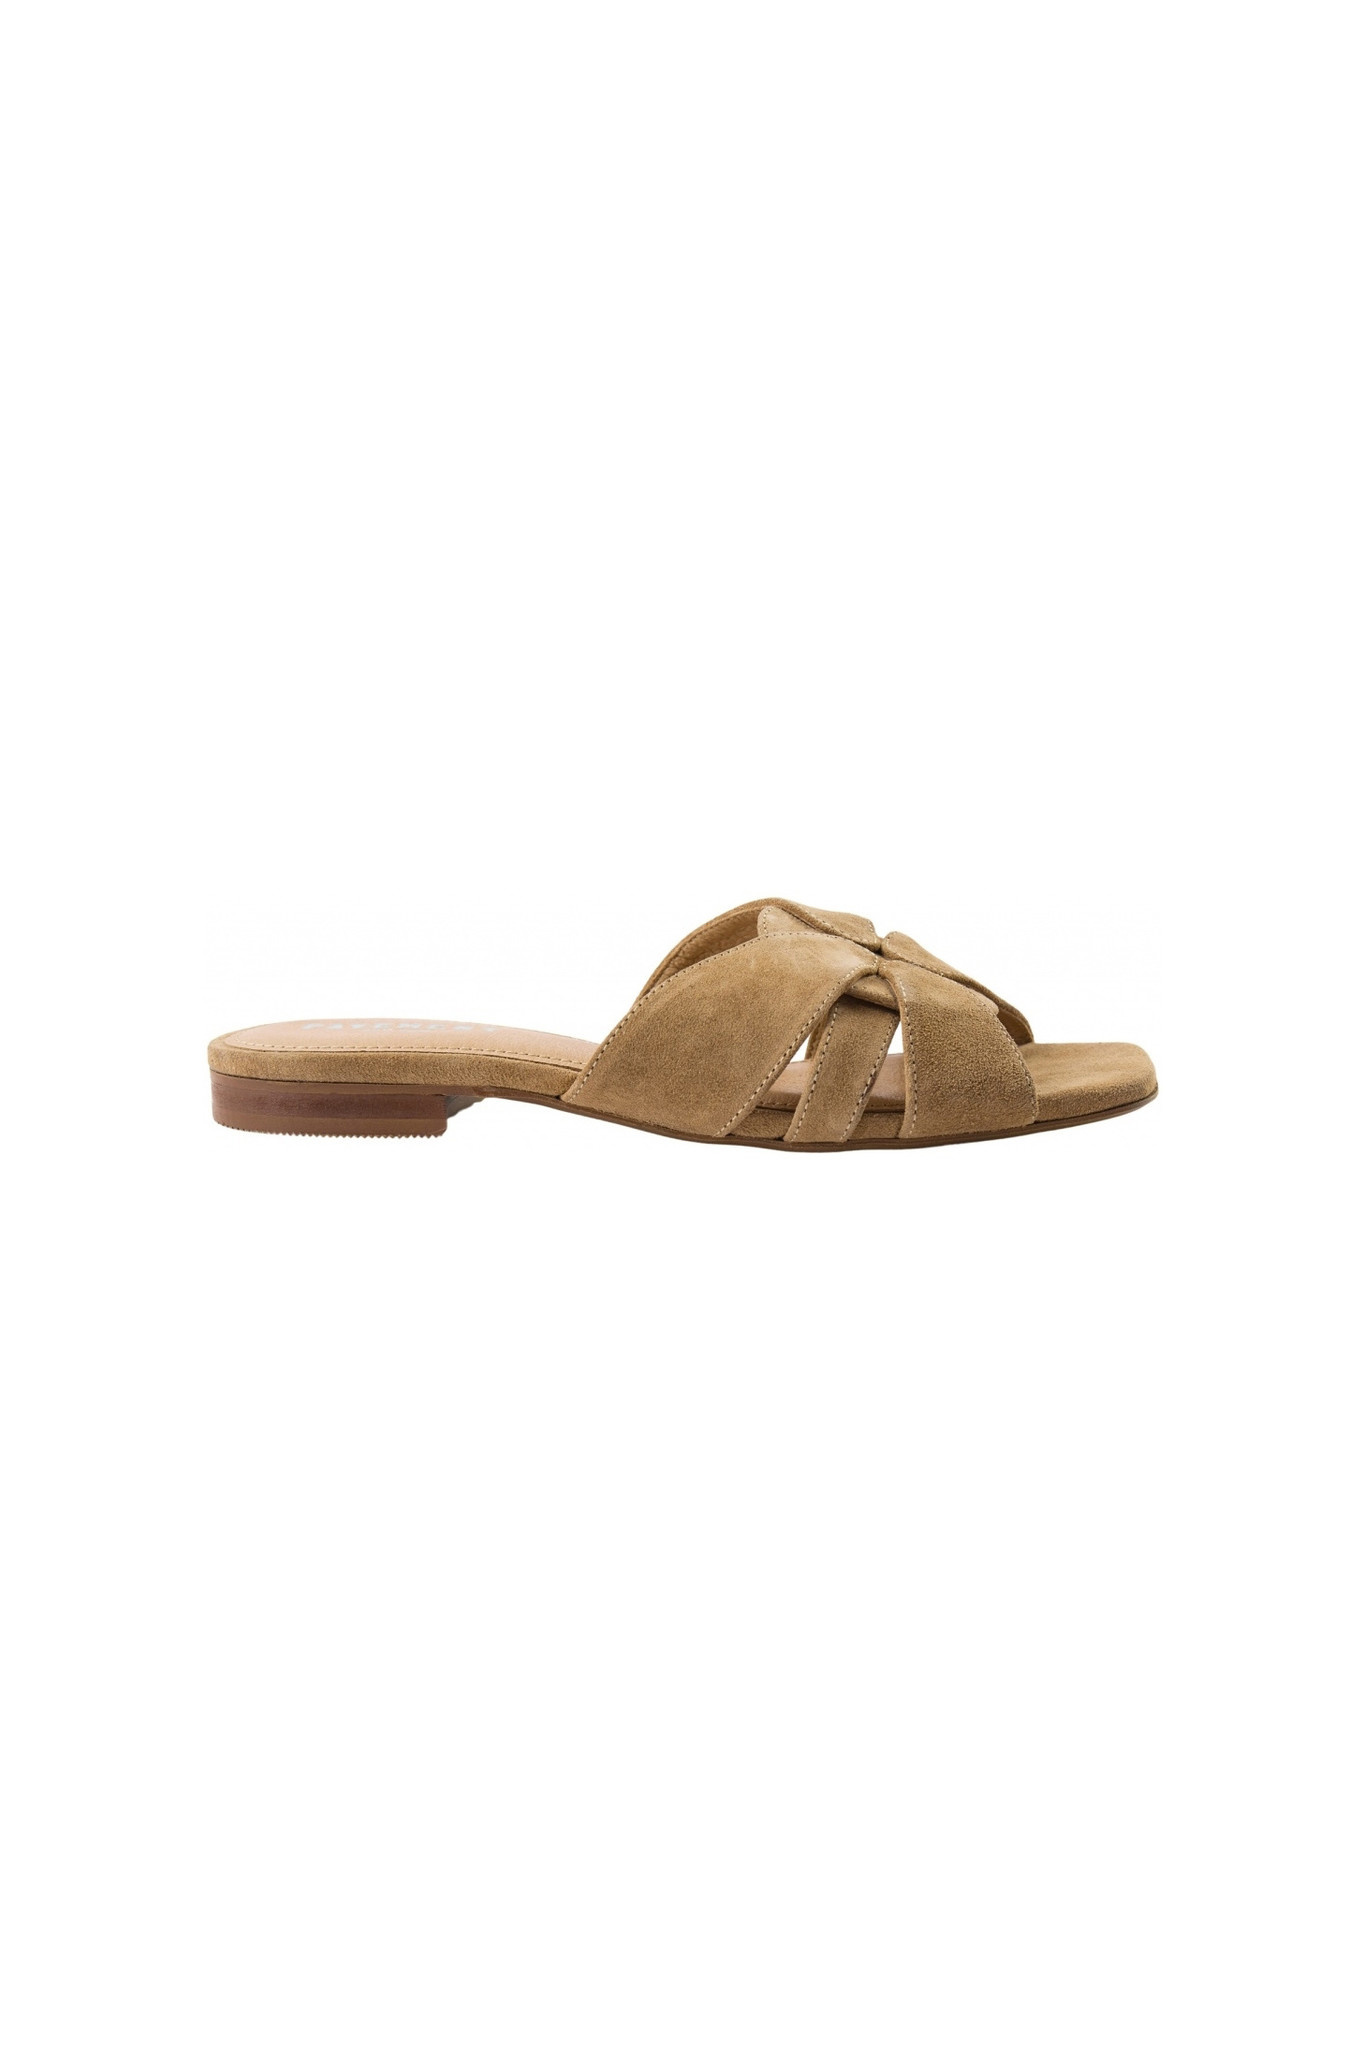 Gin Slipper - Taupe Suede-1